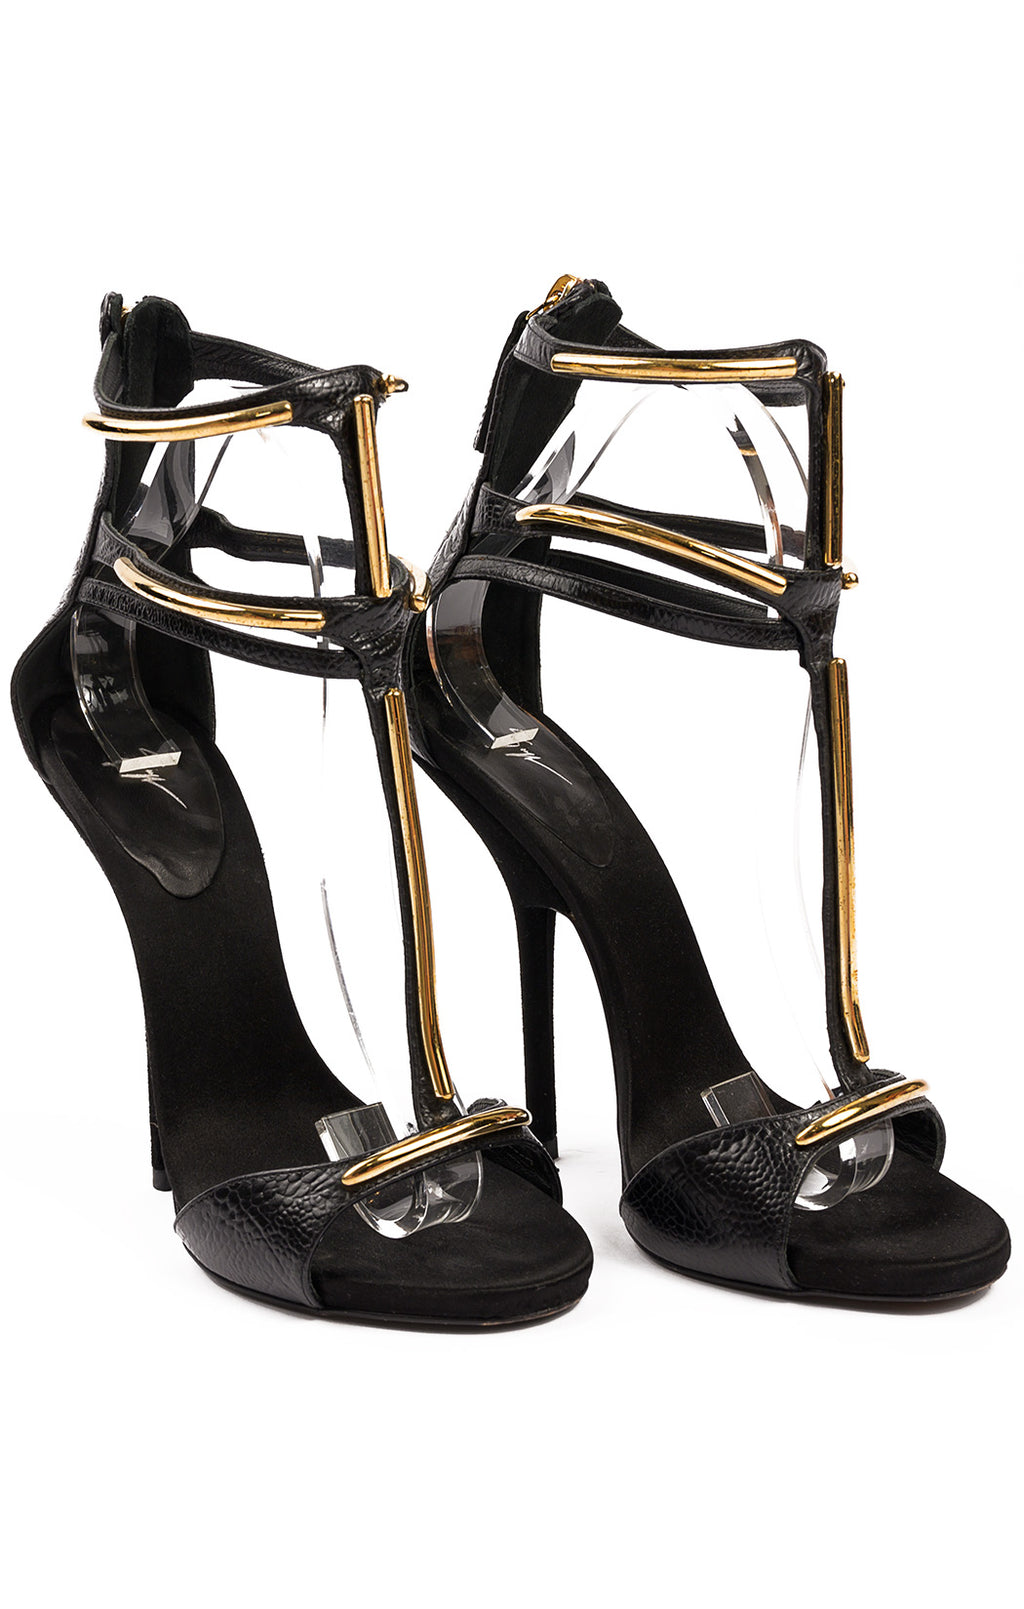 "Black leather with gold metal decoration open toe, triple ankle strap high heel (5.25"")"